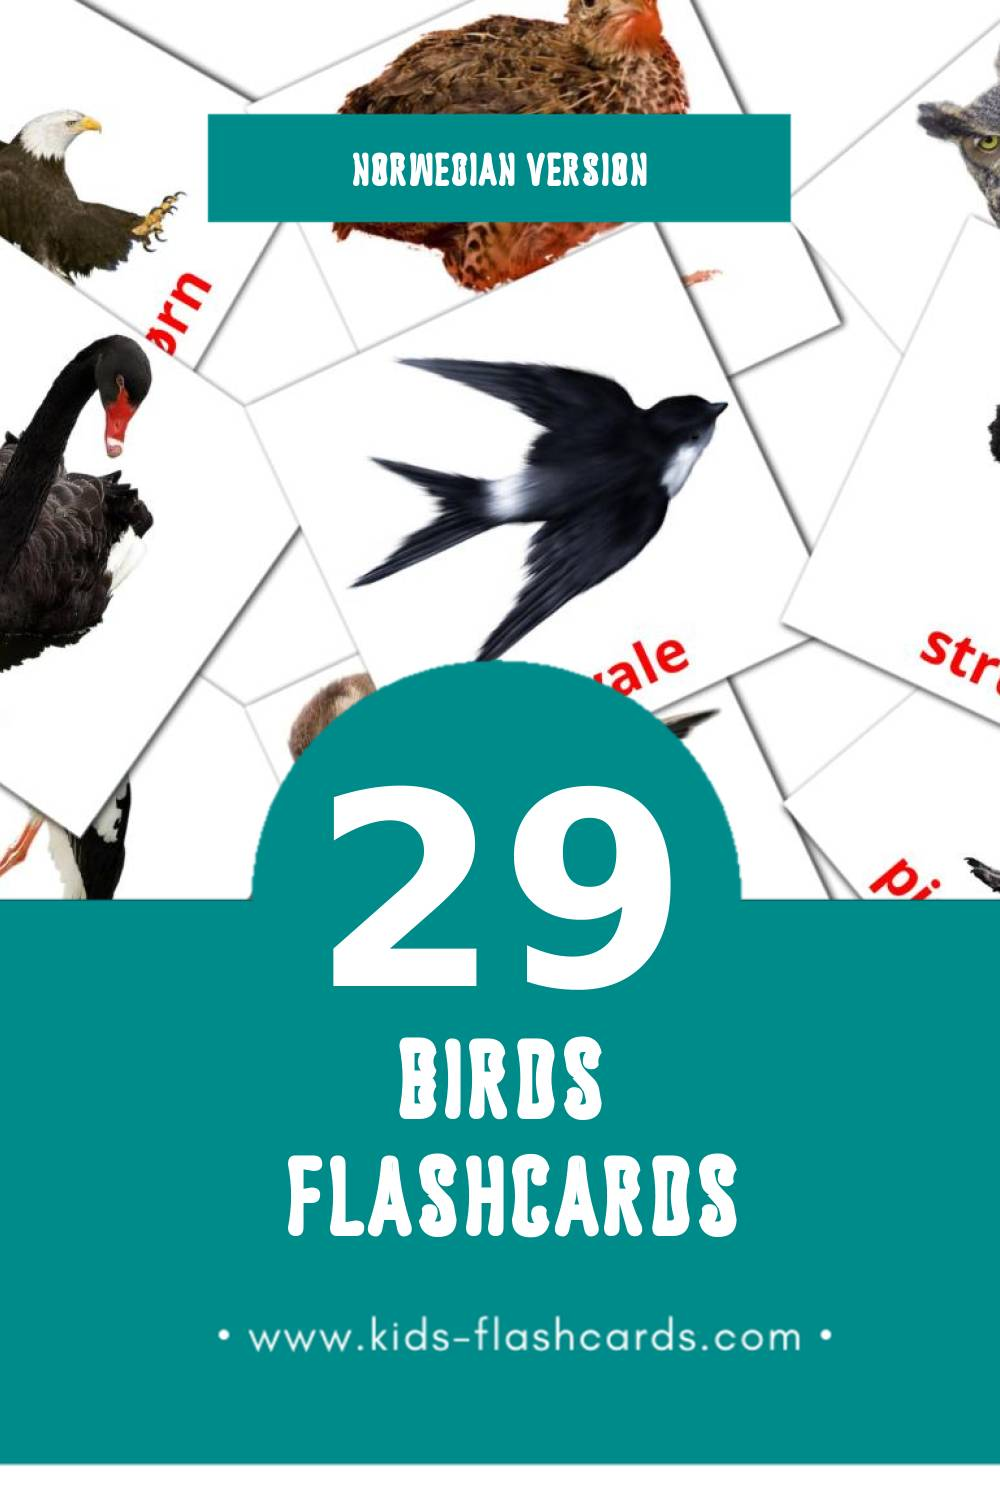 Visual Fugler Flashcards for Toddlers (18 cards in Norwegian)